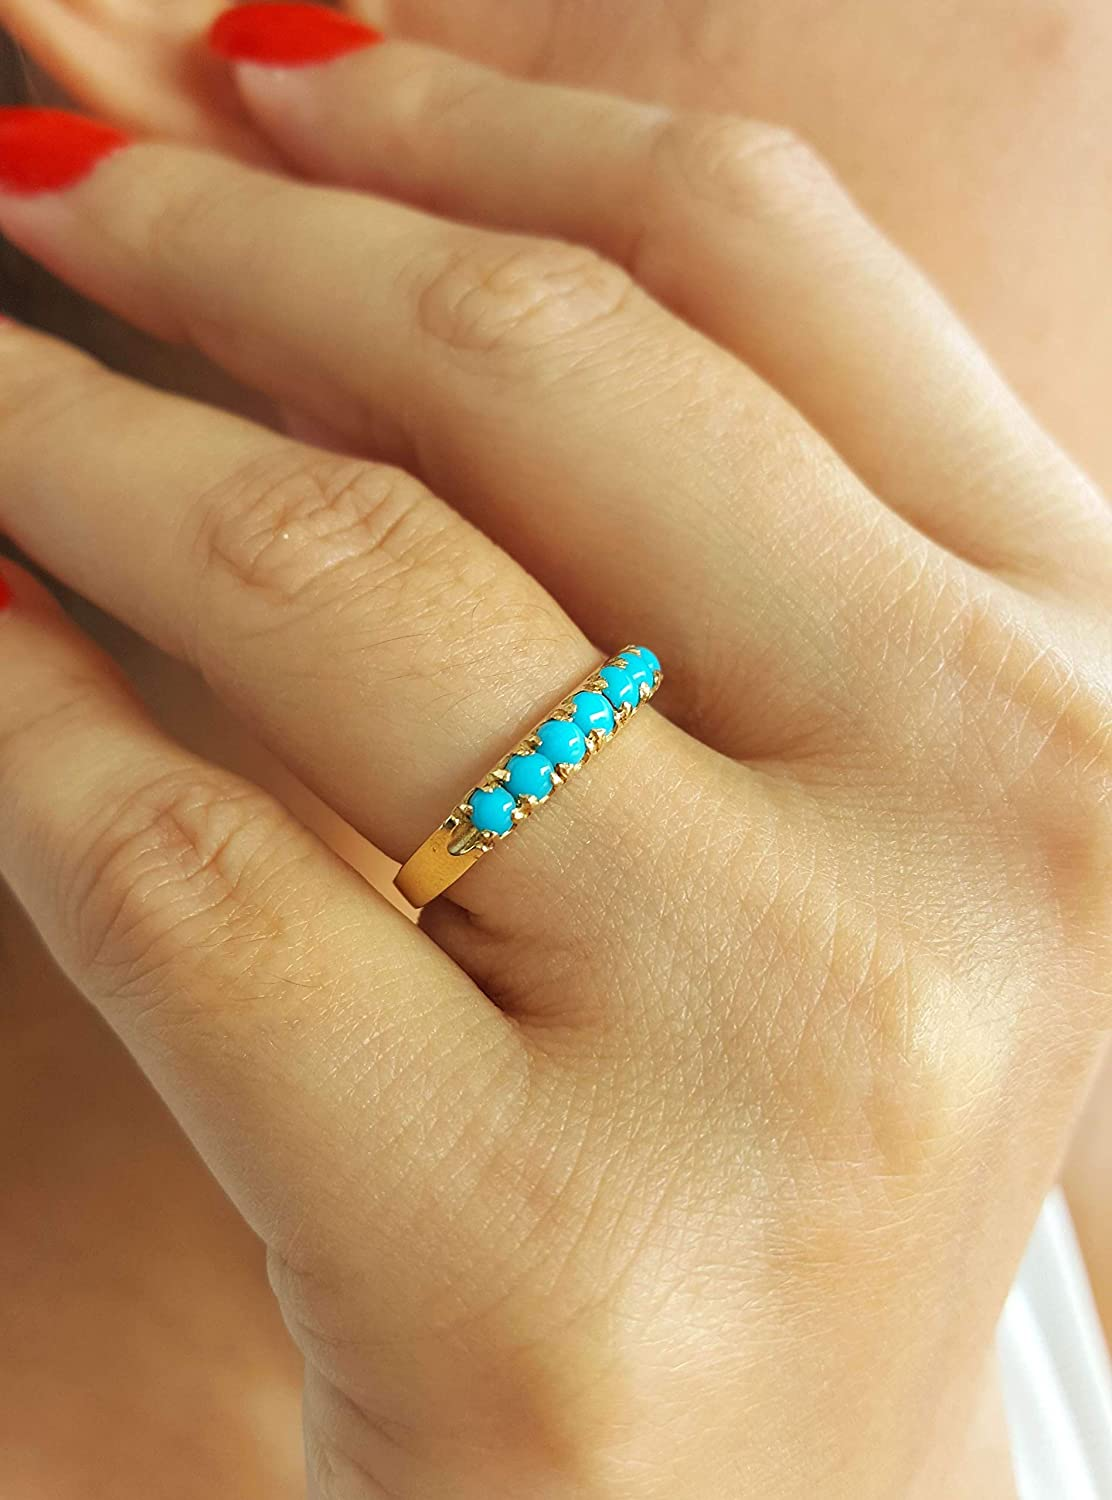 Details about  /14k solid gold ring turquoise ring natural diamond ring engagement ring SJR1166